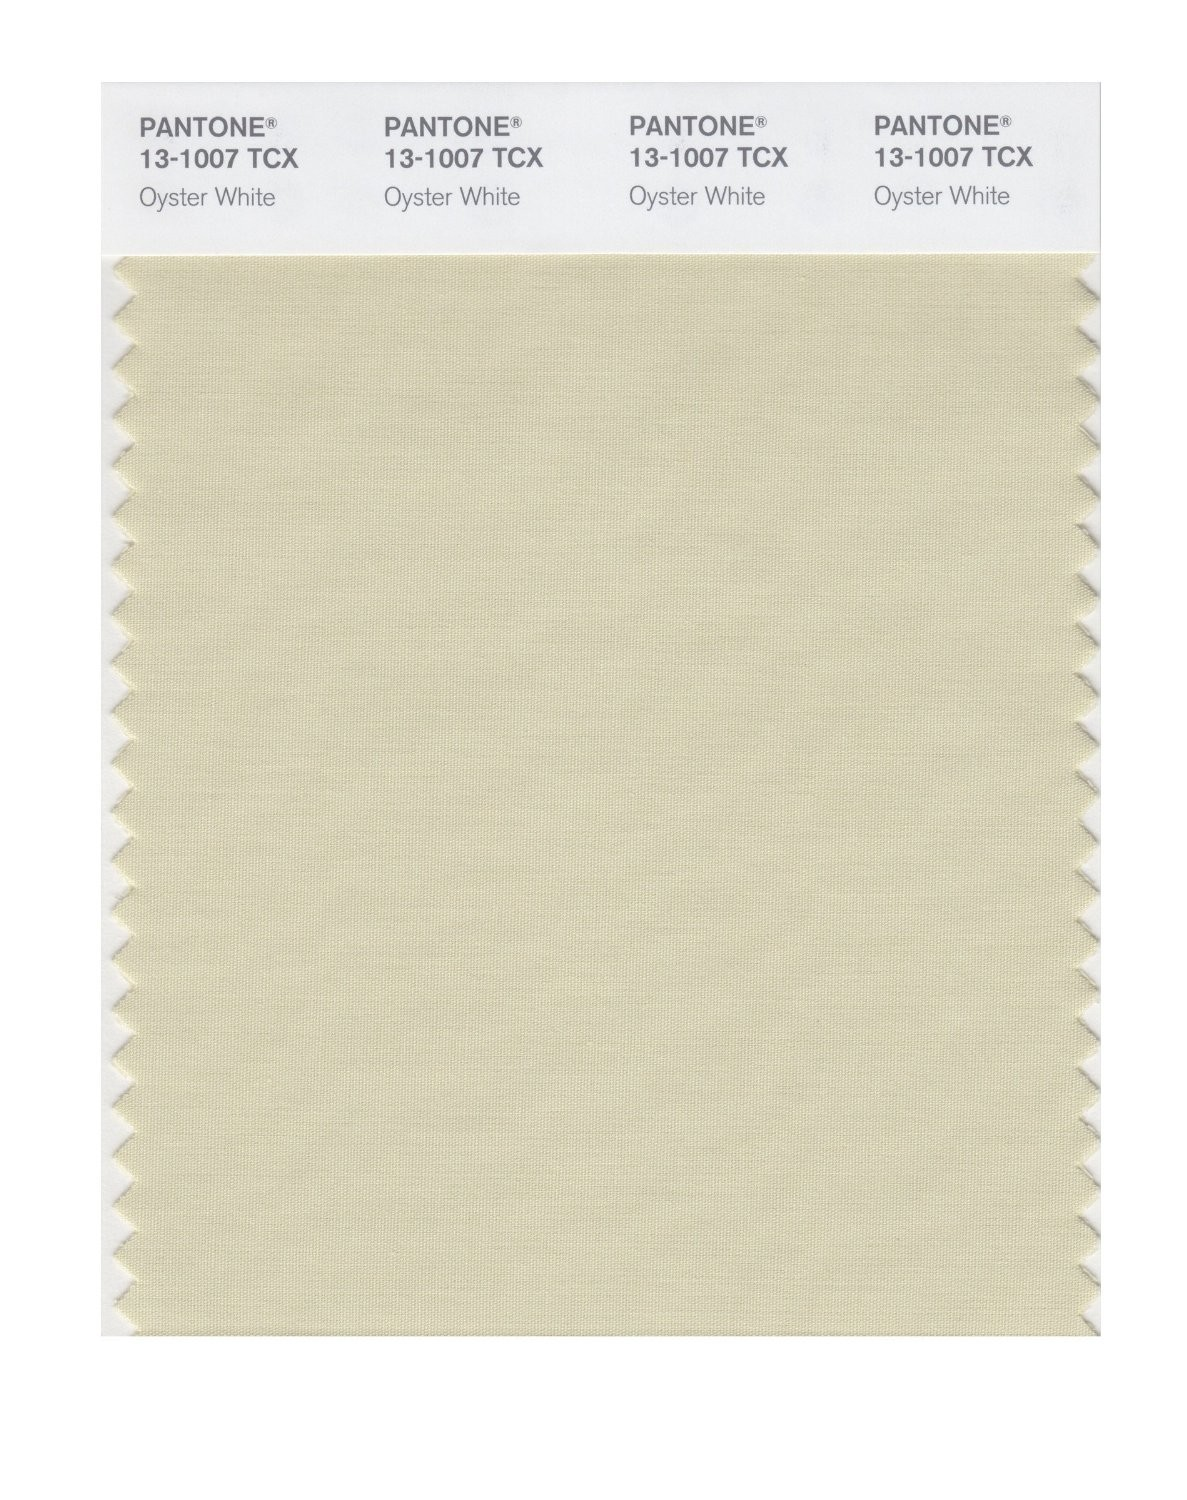 Pantone 13-1007 TCX Swatch Card Oyster White